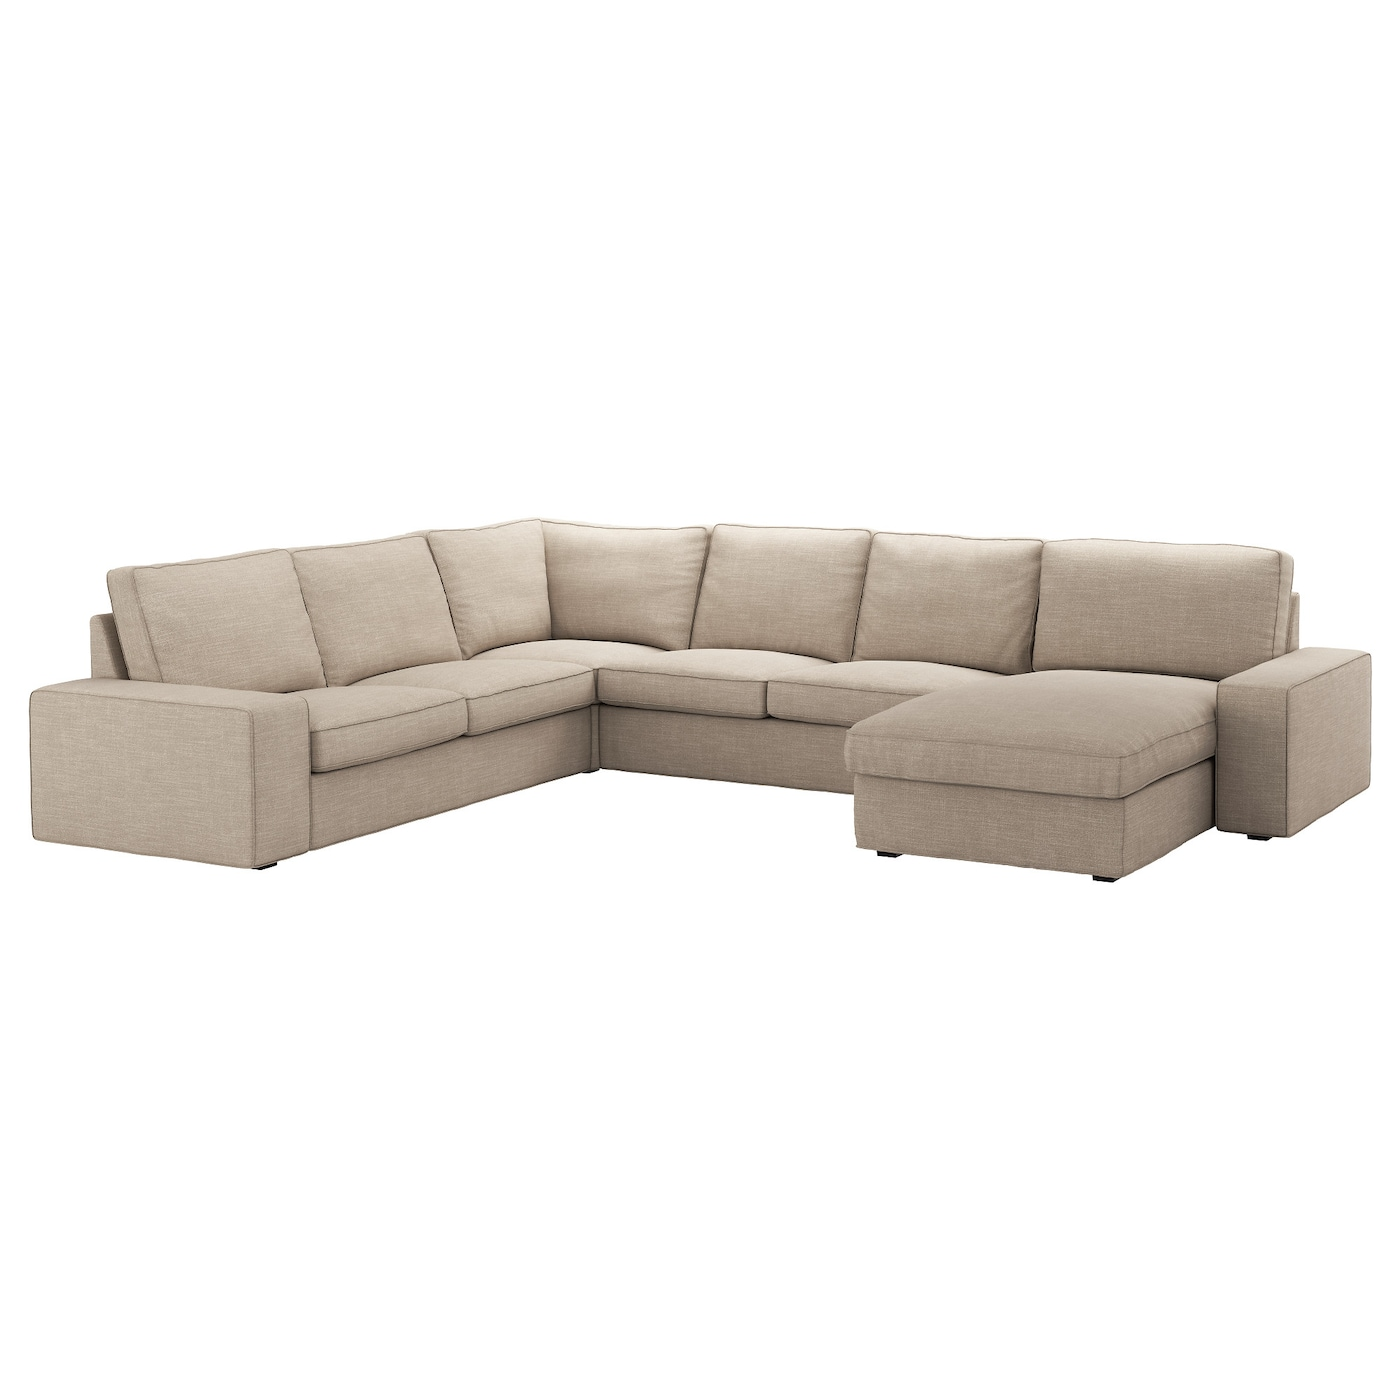 Kivik corner sofa 2 2 with chaise longue hillared beige ikea for Ikea corner sofa